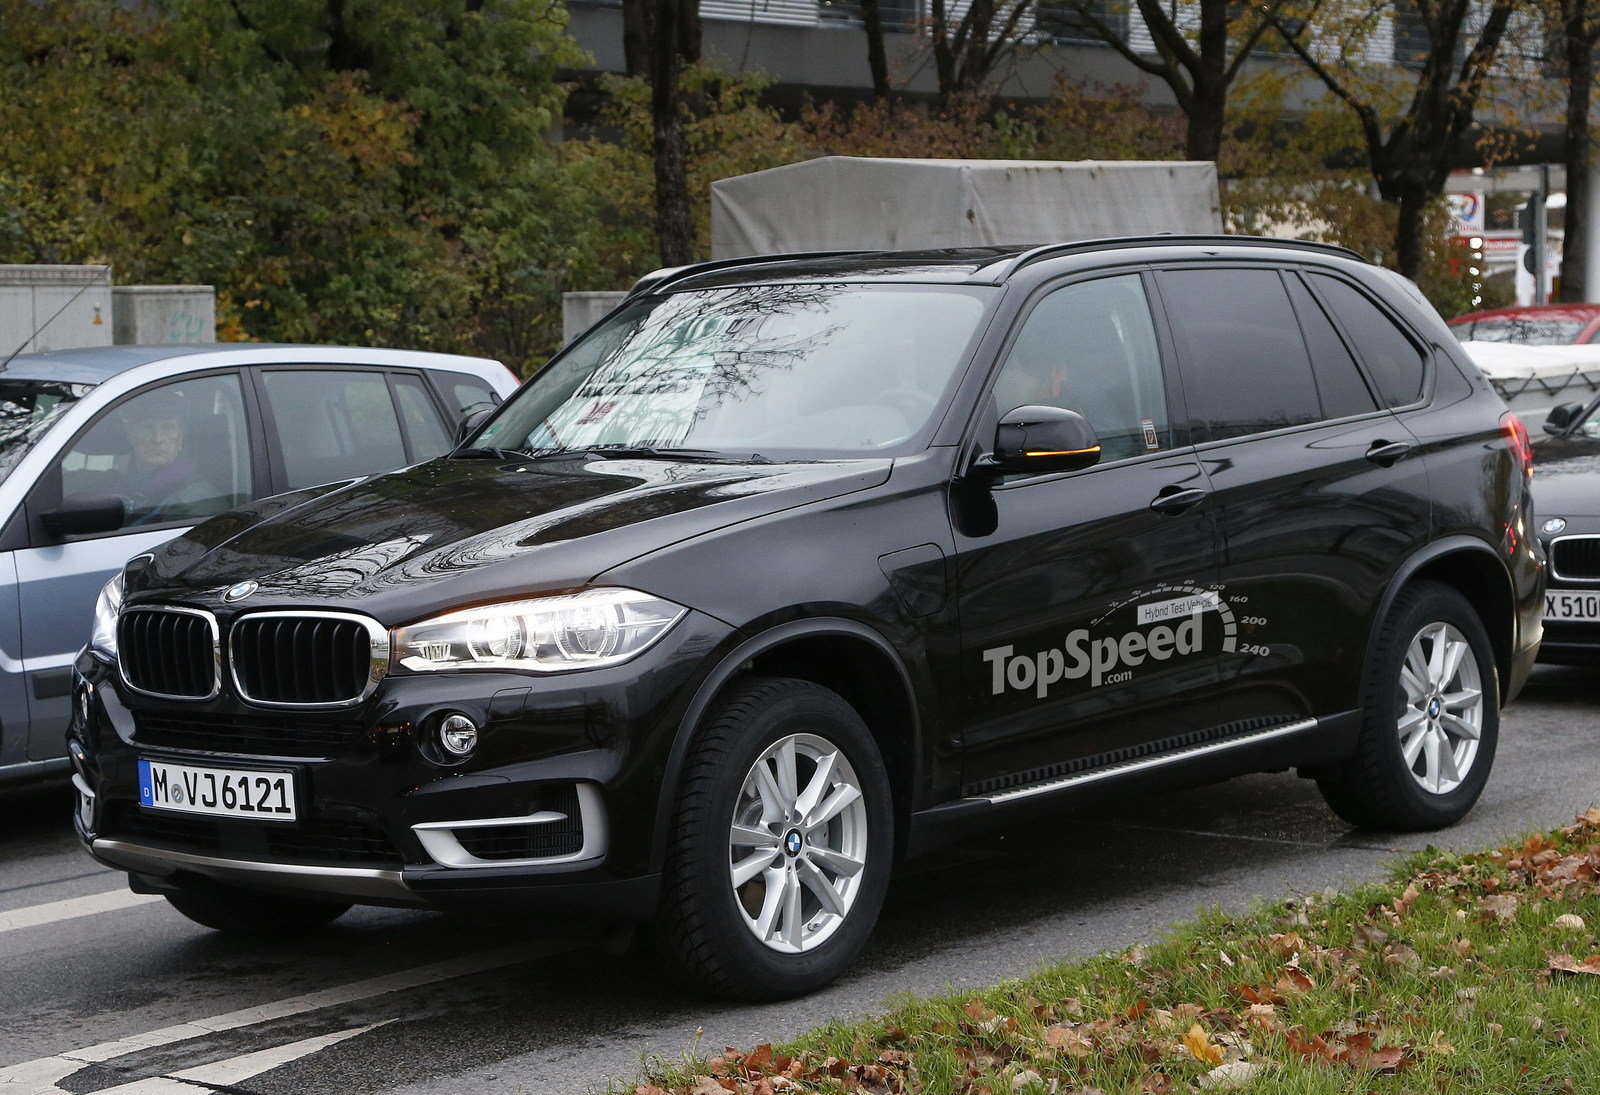 2015 bmw x5 plugin hybrid edrive picture 536600 car review top speed. Black Bedroom Furniture Sets. Home Design Ideas